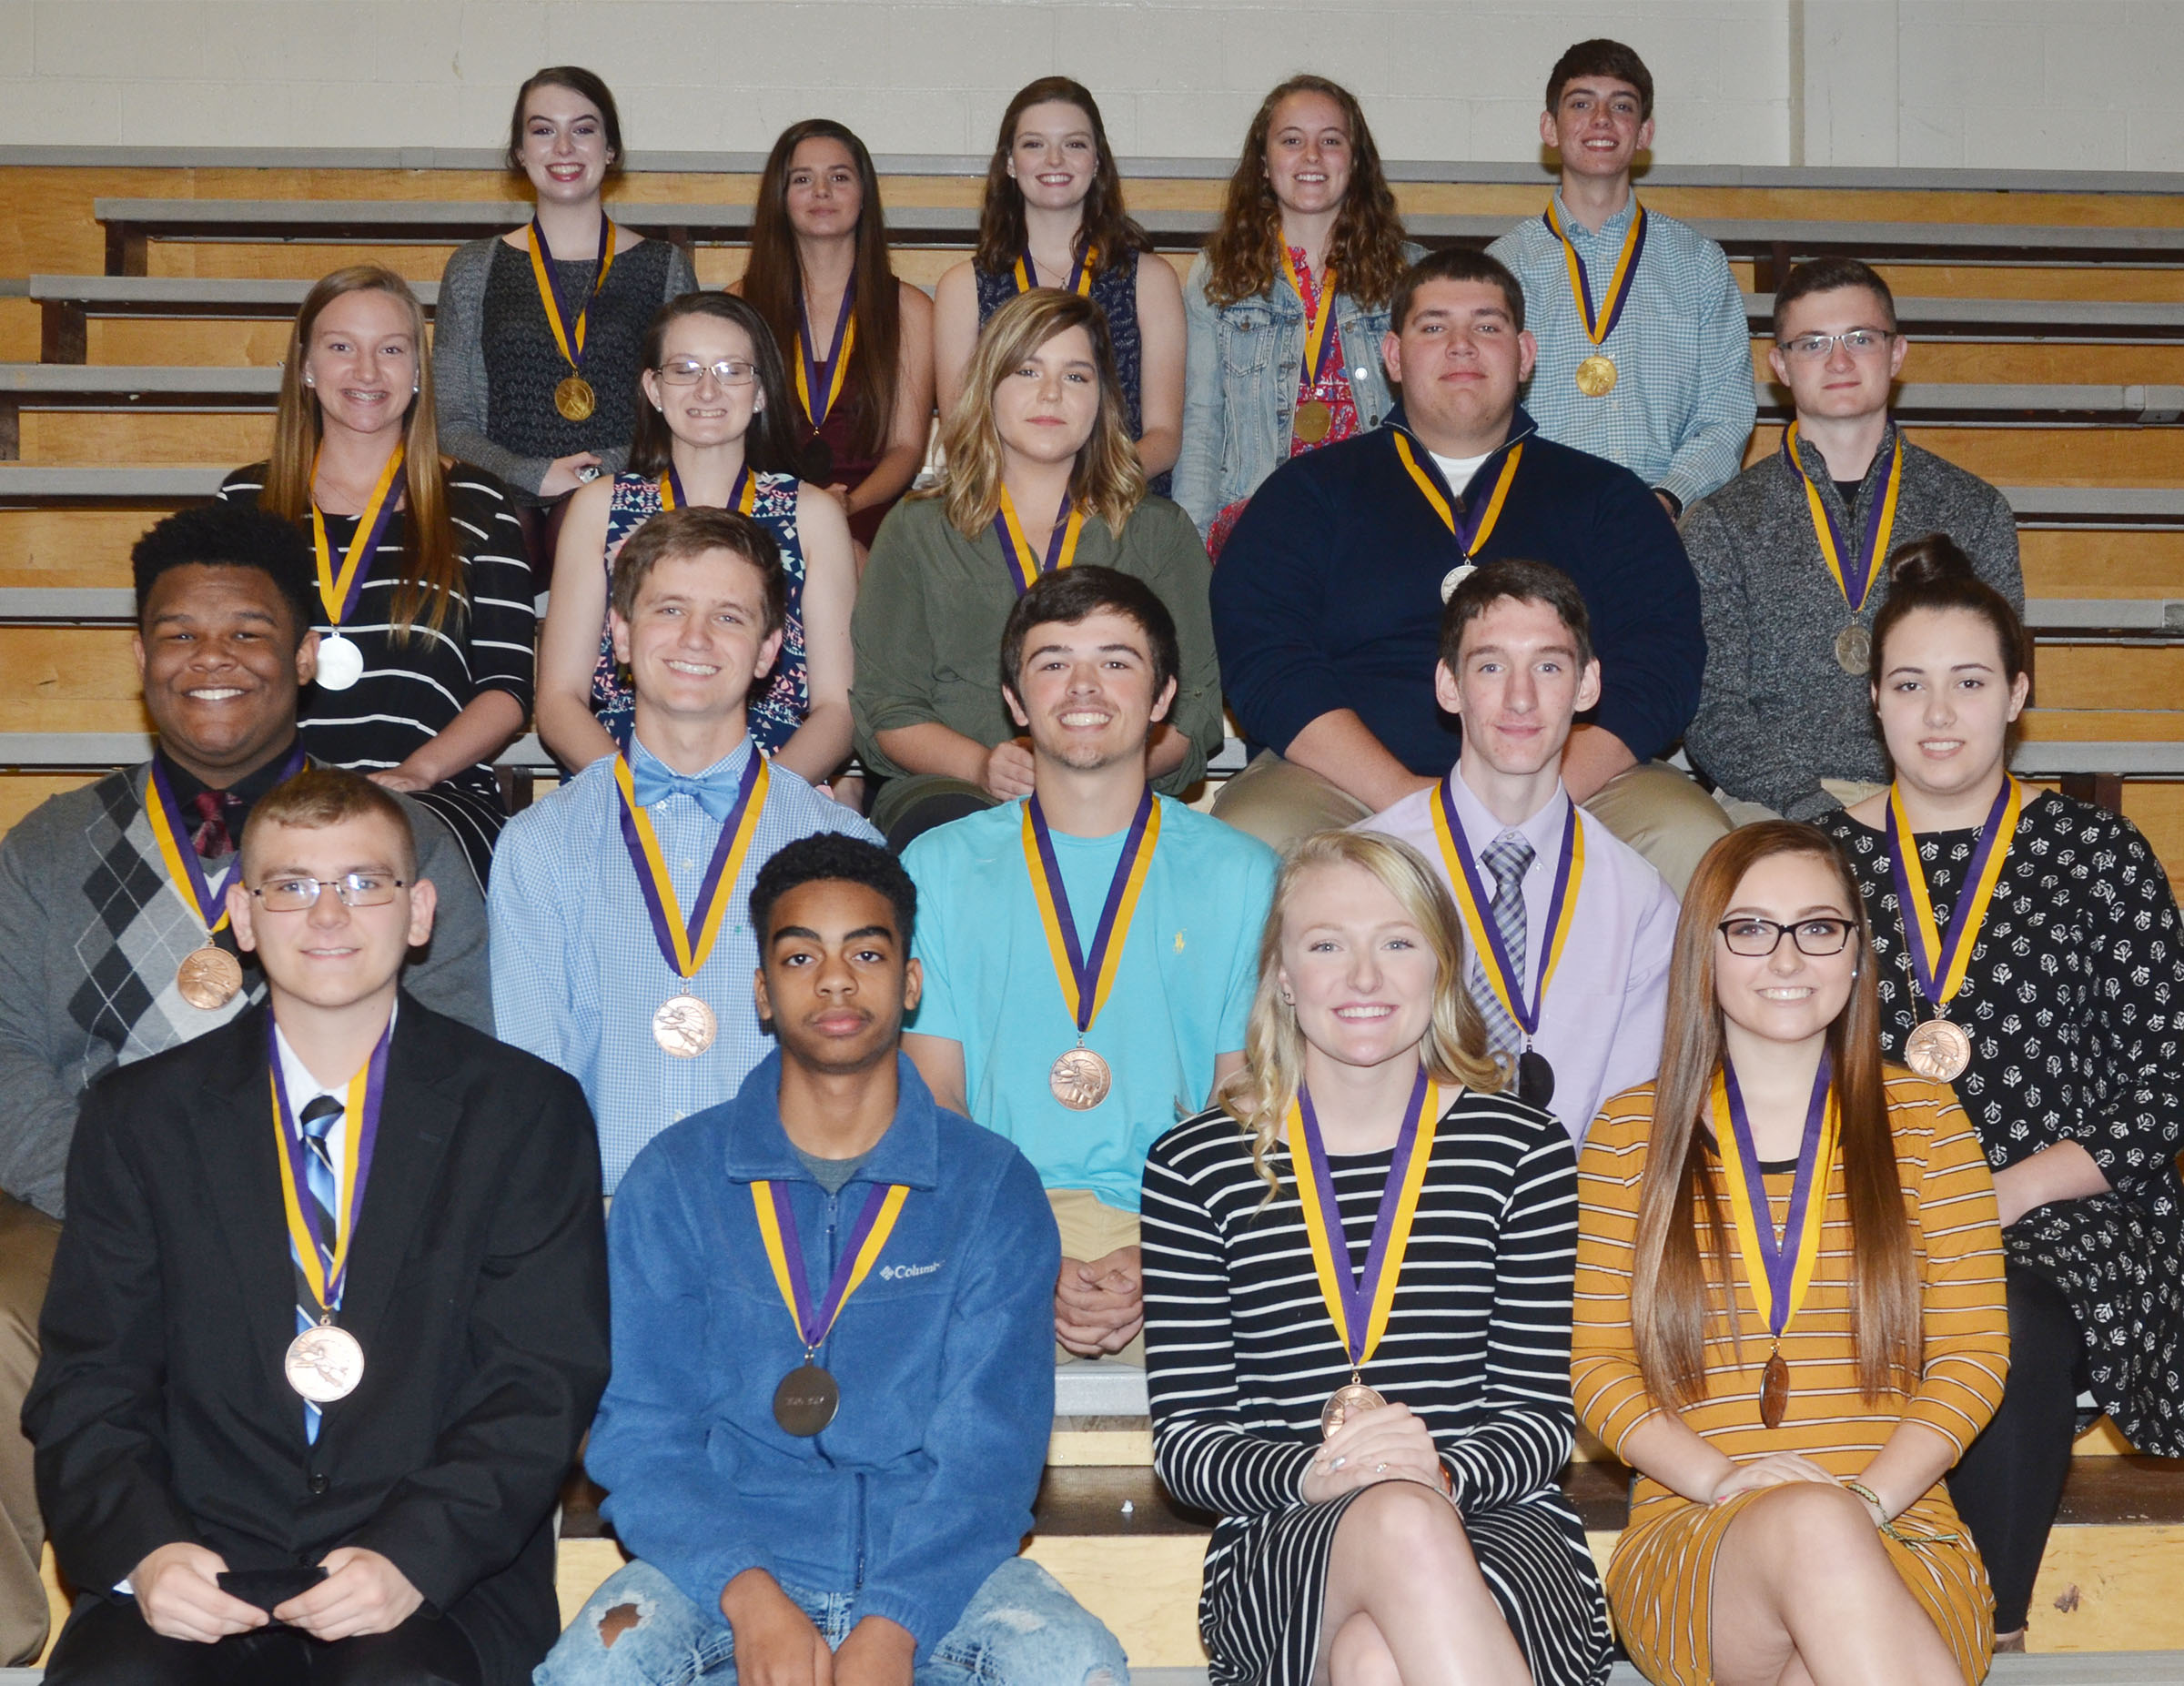 CHS students honored at this year's Top 10 percent banquet are, from left, front, sophomores Brandon Greer, Davon Cecil, Abbie Dicken and Reagan Knight. Second row, sophomores Jeremiah Jackson, Myles Murrell, Ryan Kearney, Ian McAninch and Elizabeth Sullivan. Third row, juniors Madison Dial, Kimberly Harden, Sara Farmer, Ryan Wiedewitsch and Bryce Richardson. Back, seniors Laura Lamb, Shauna Jones, Blair Lamb, Caroline McMahan and Murphy Lamb. Absent are senior Tiffany Stagner and juniors Alex Doss and Samuel Kessler.